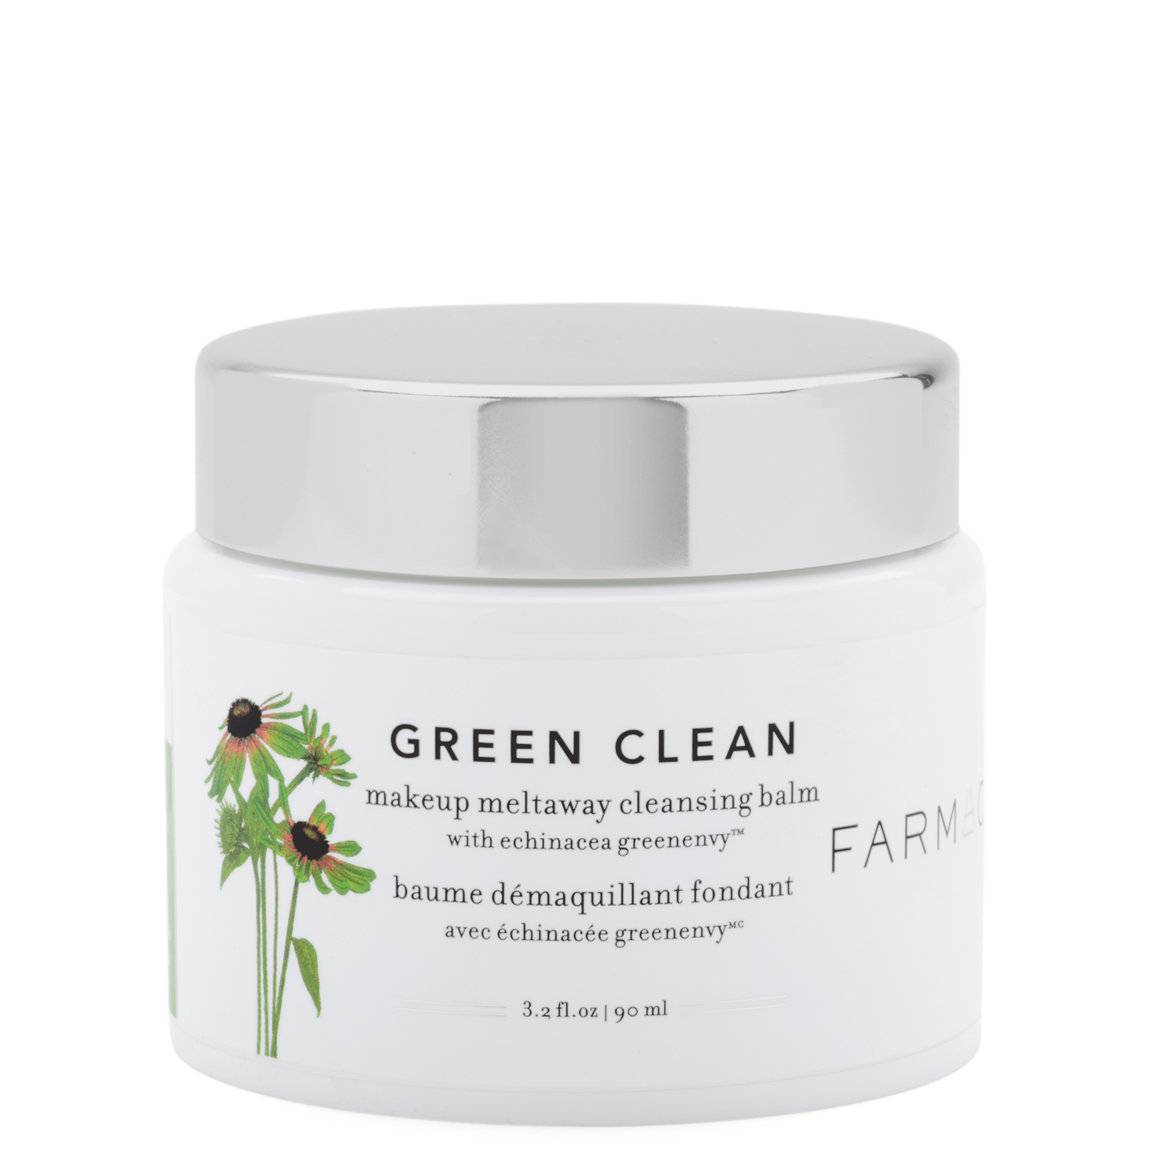 Image result for farmacy cleansing balm